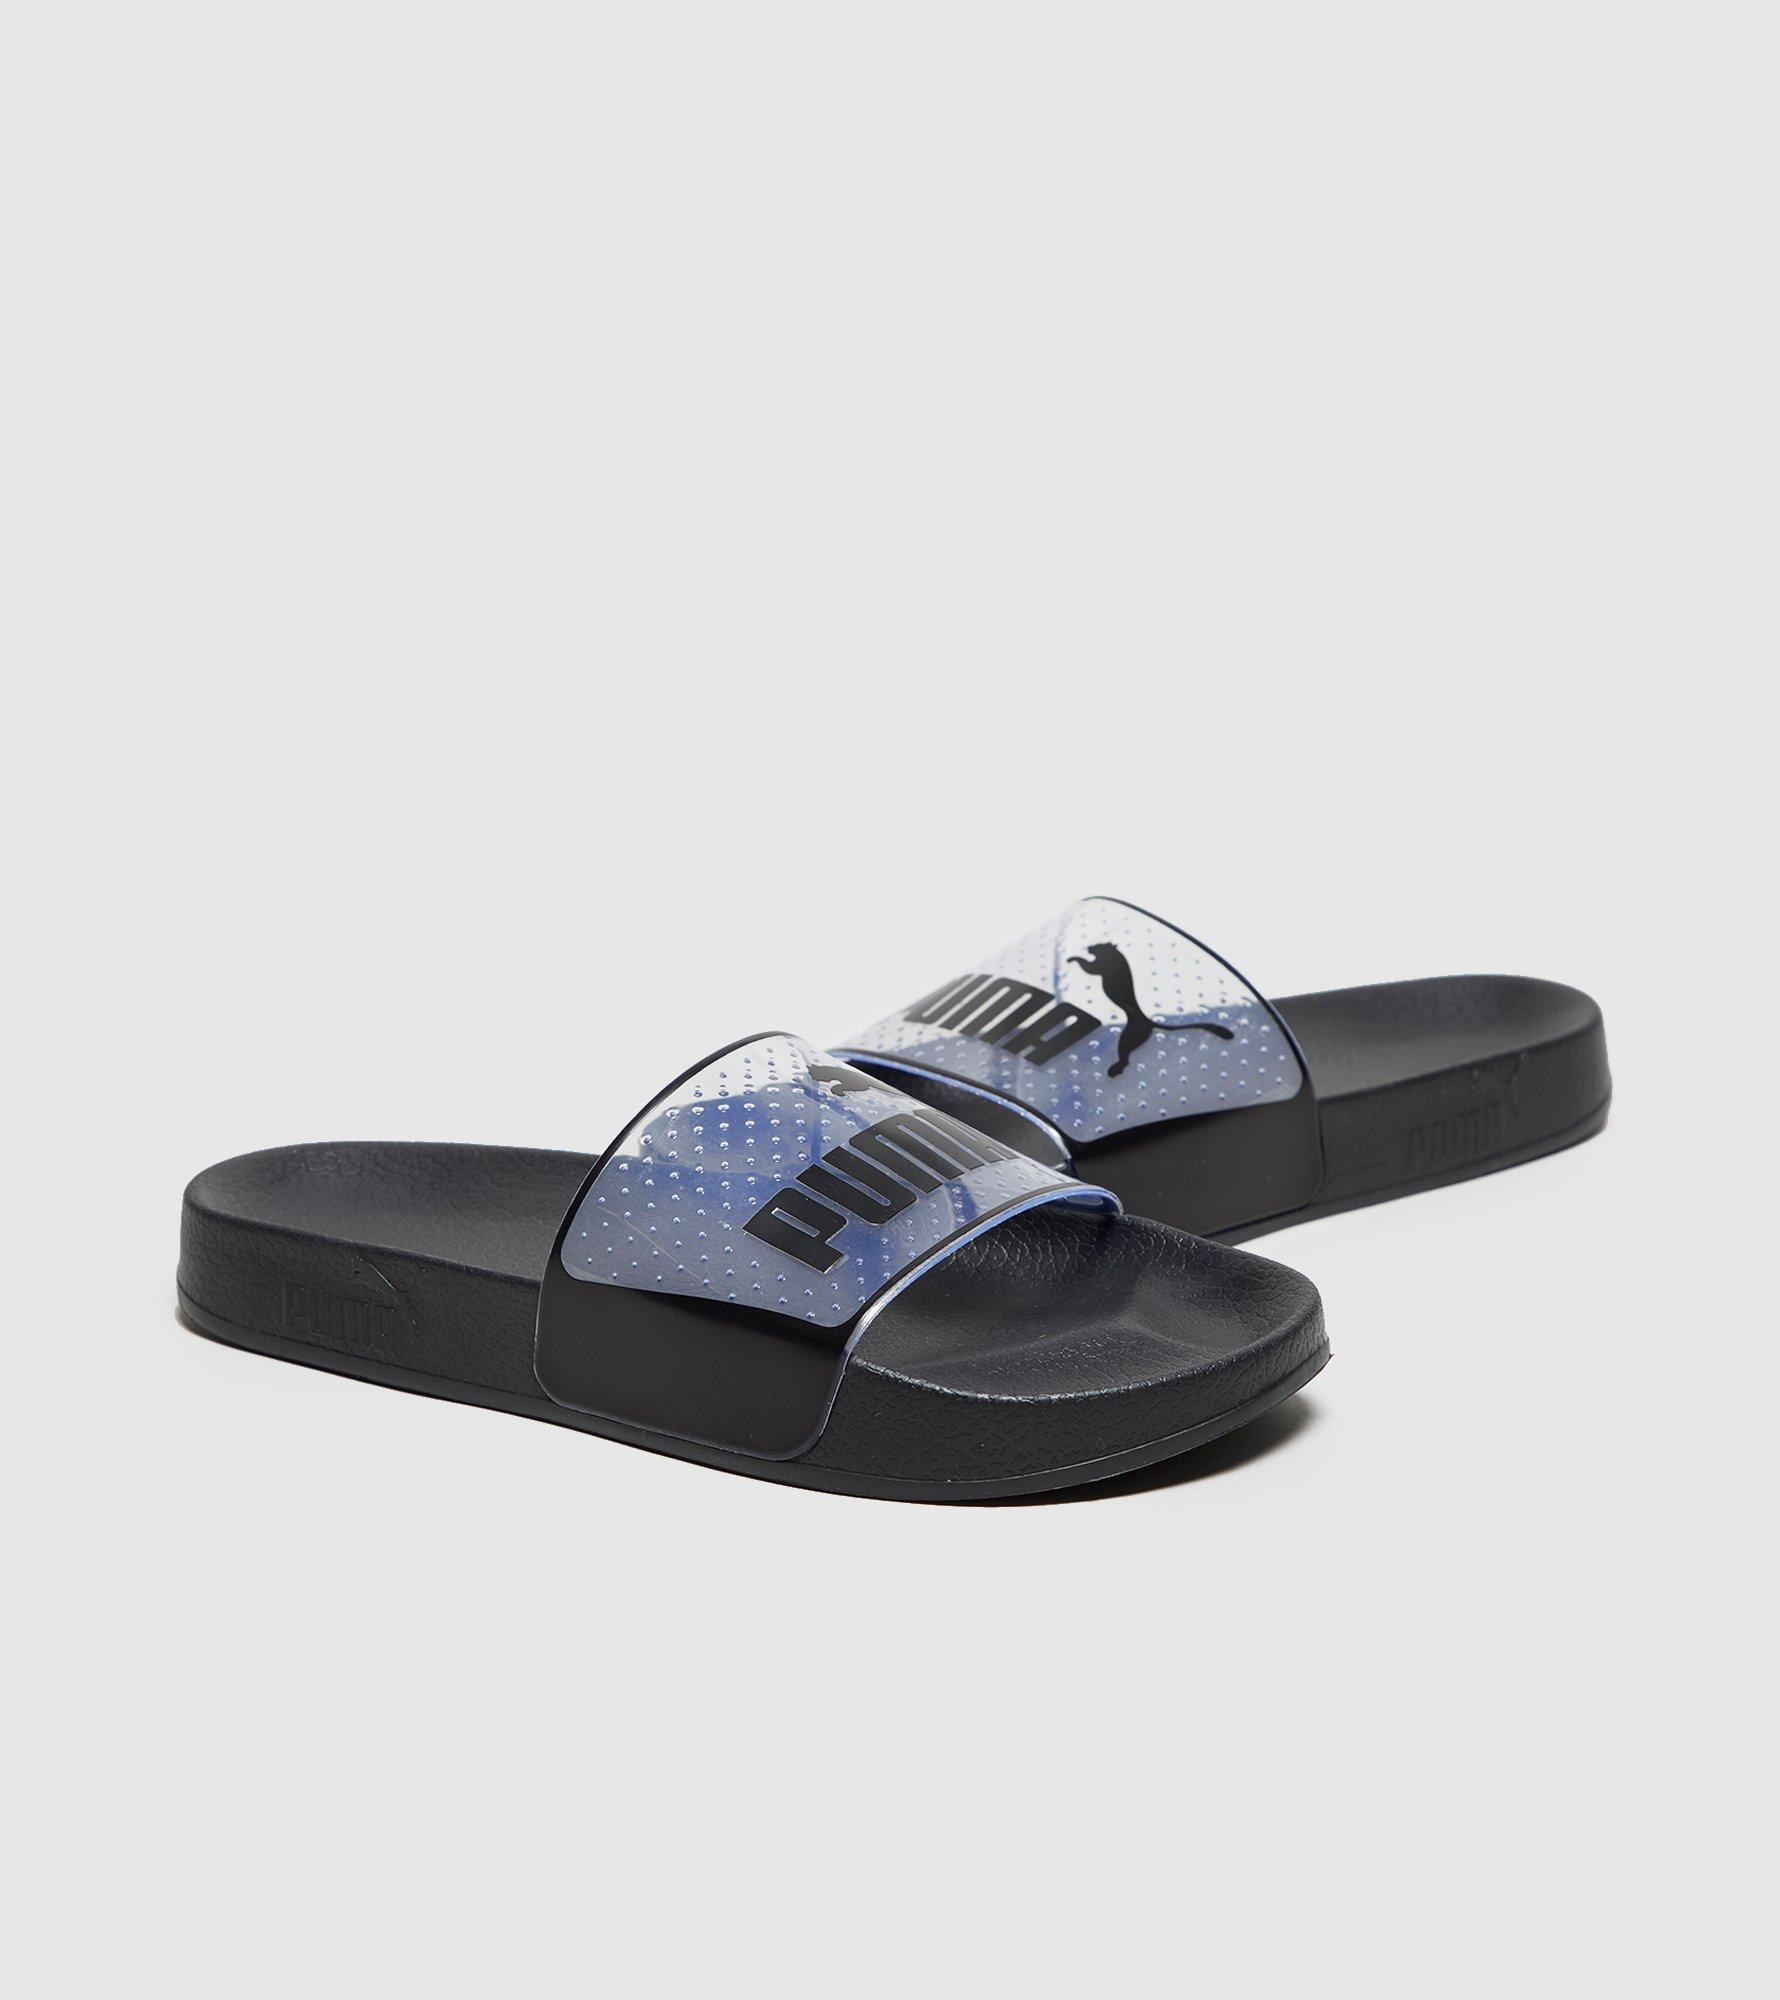 PUMA Leadcat Jelly Slides Women s in Black - Lyst 734dc9cd9